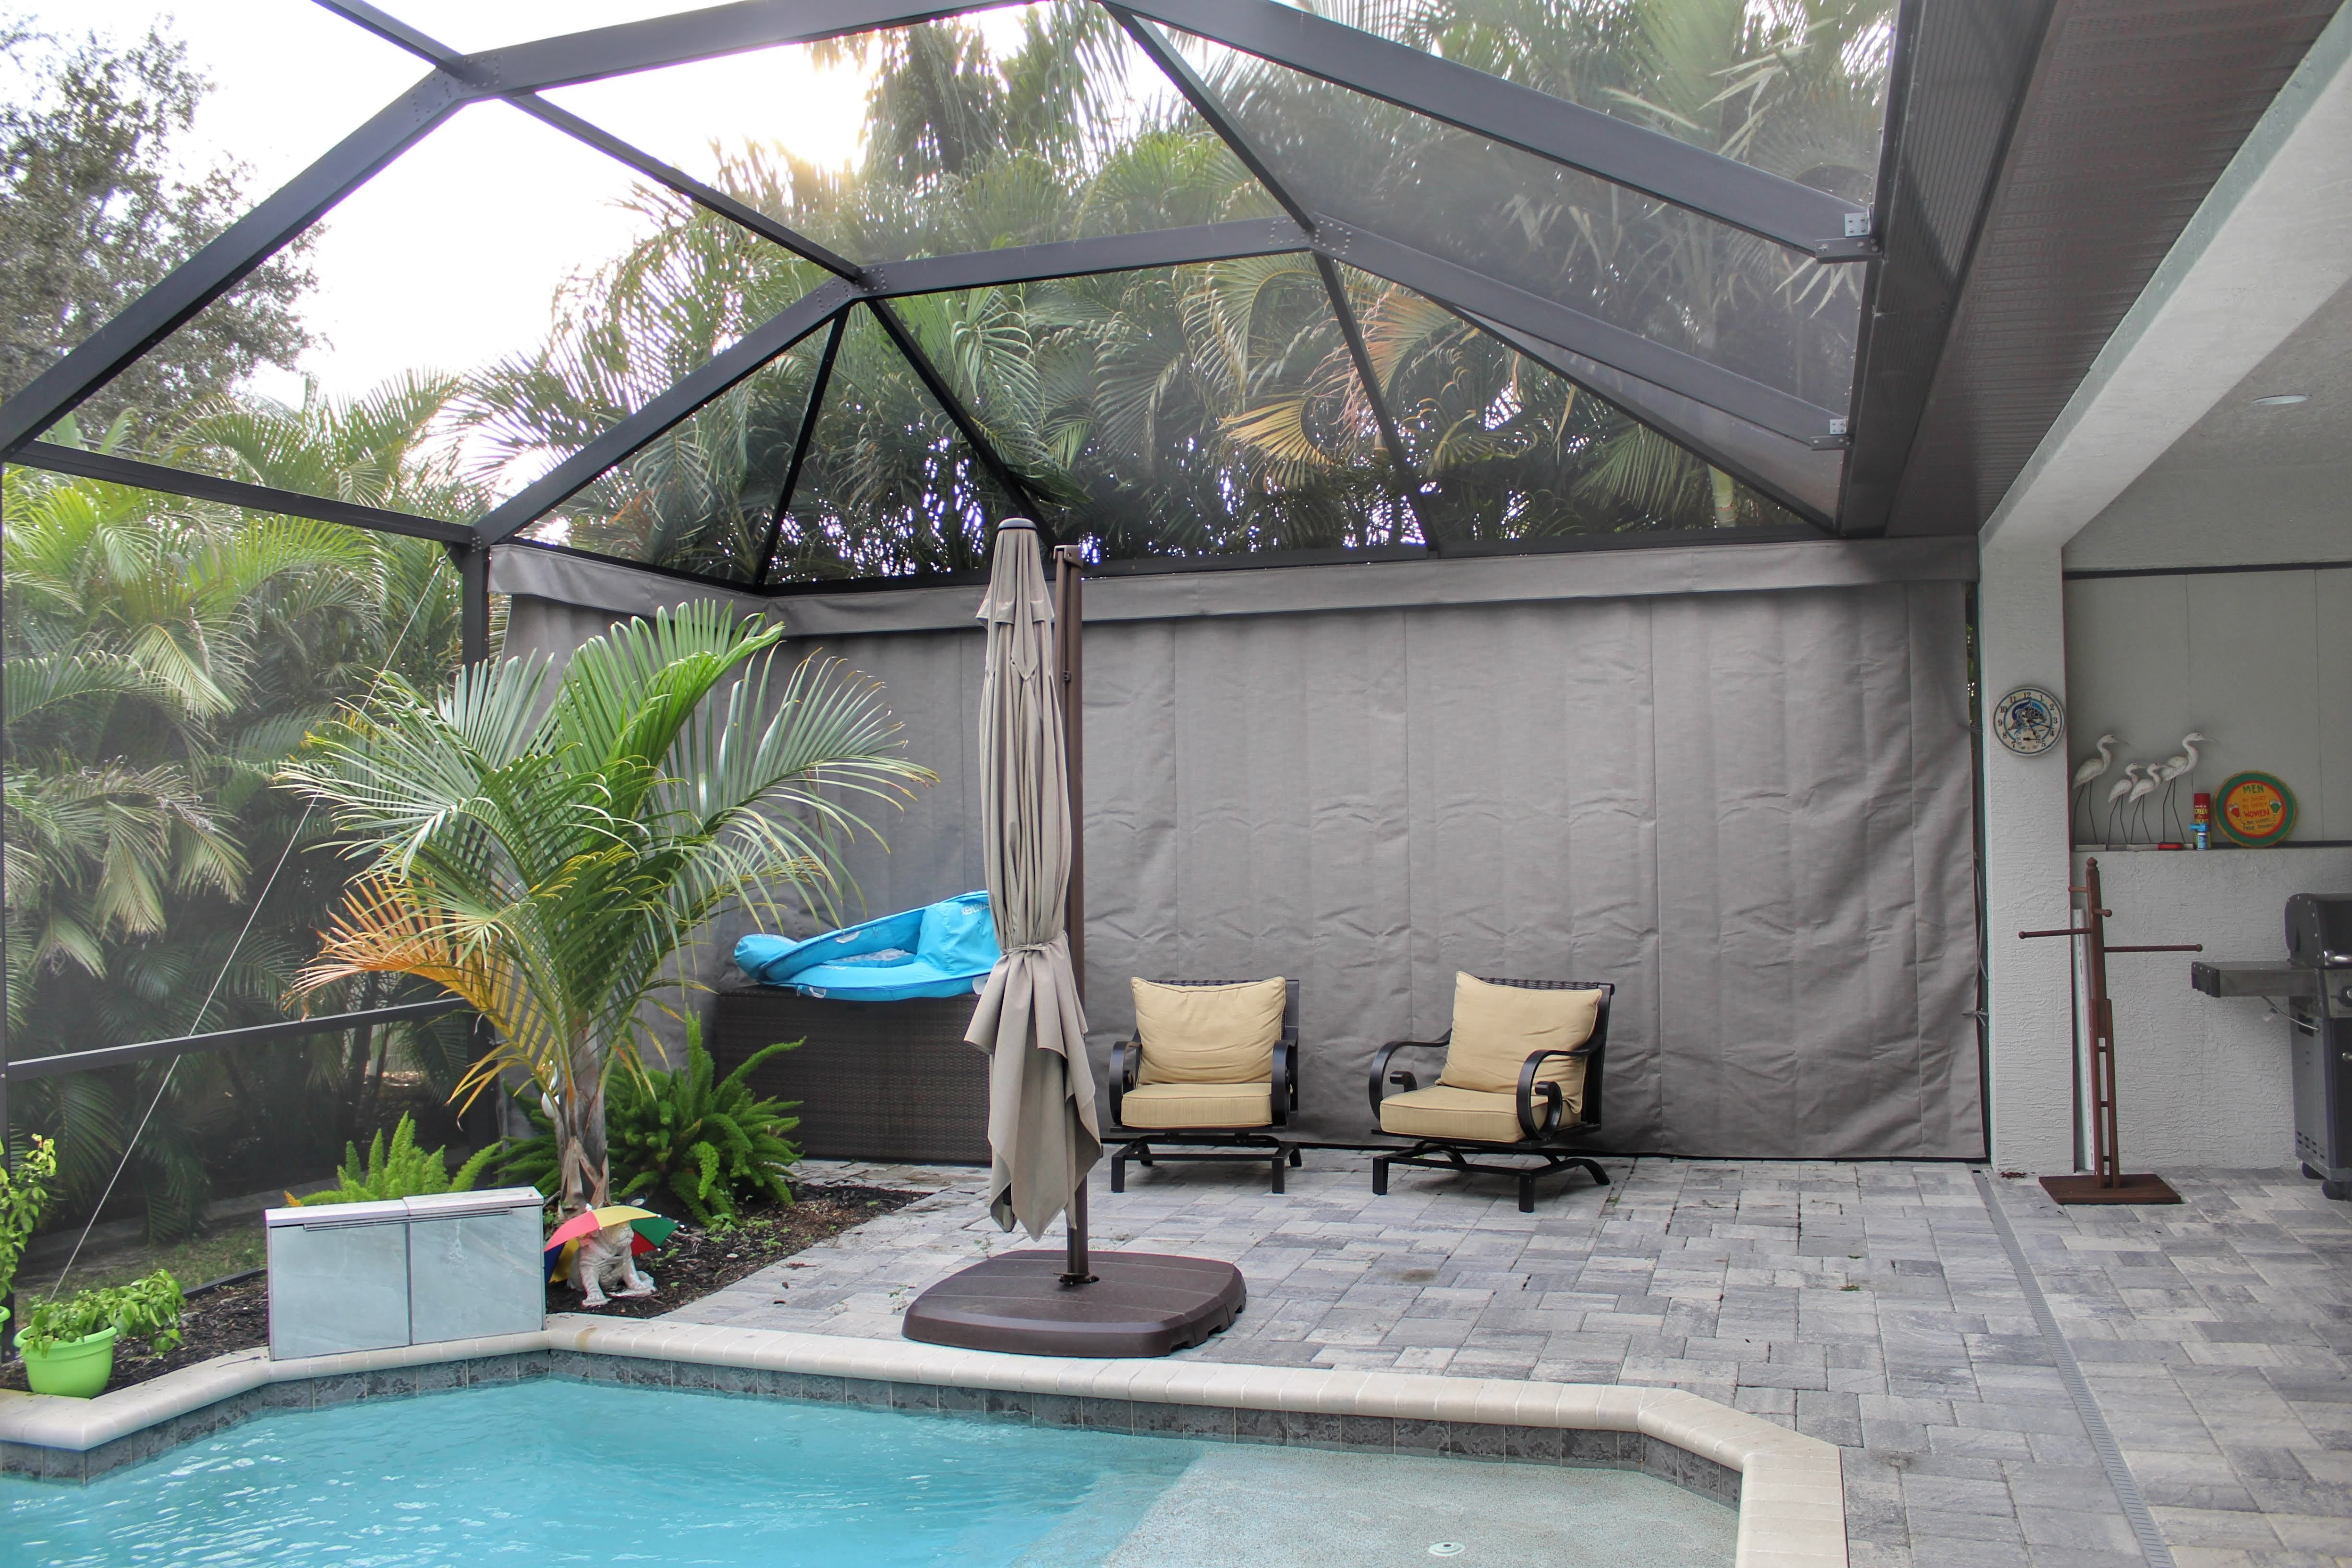 Our Gallery Outdoor Curtains For Ultimate Pool Cage Privacy And Lanai Privacy In 2020 Outdoor Pool Decor Pool Enclosures Outdoor Curtains